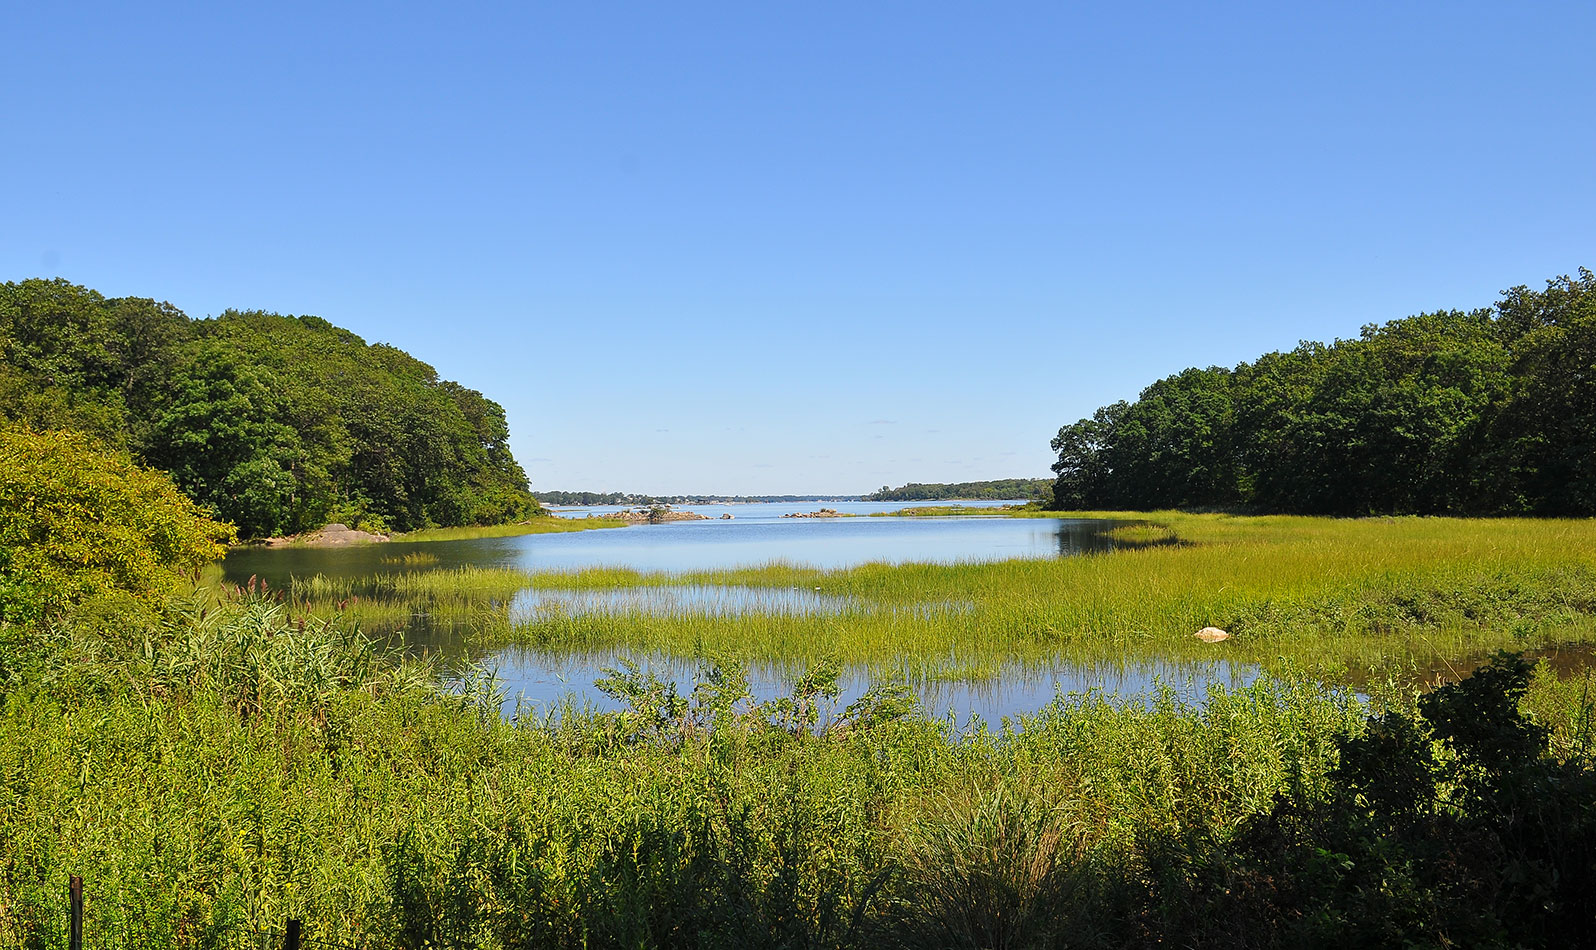 From the mansion, head out to The Lagoon, best enjoyed on foot on the Siwanoy Trail.